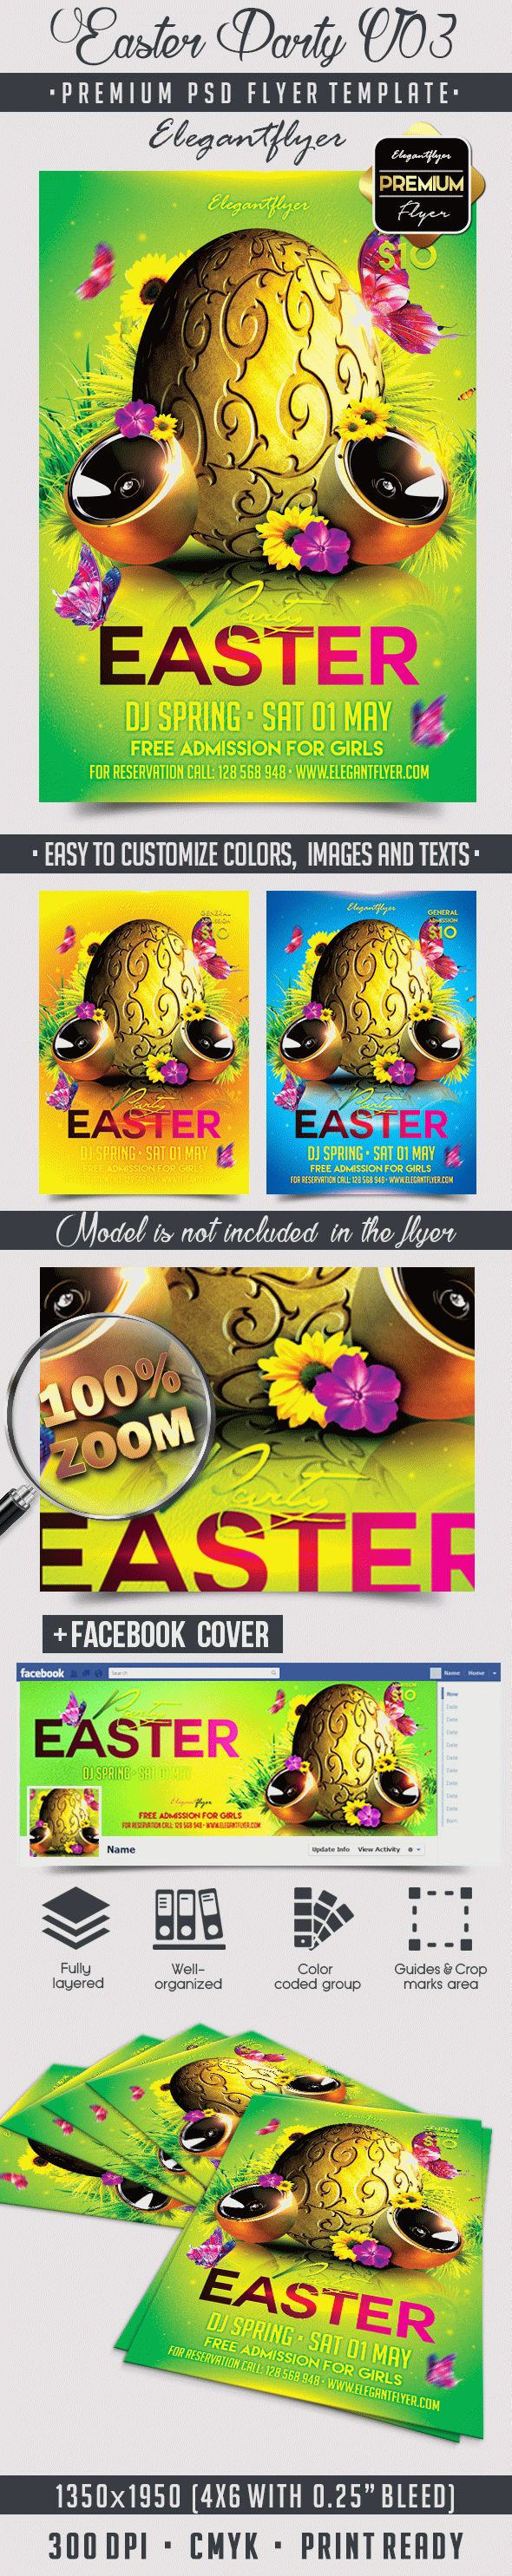 Easter Party V03 – Flyer PSD Template + Facebook Cover